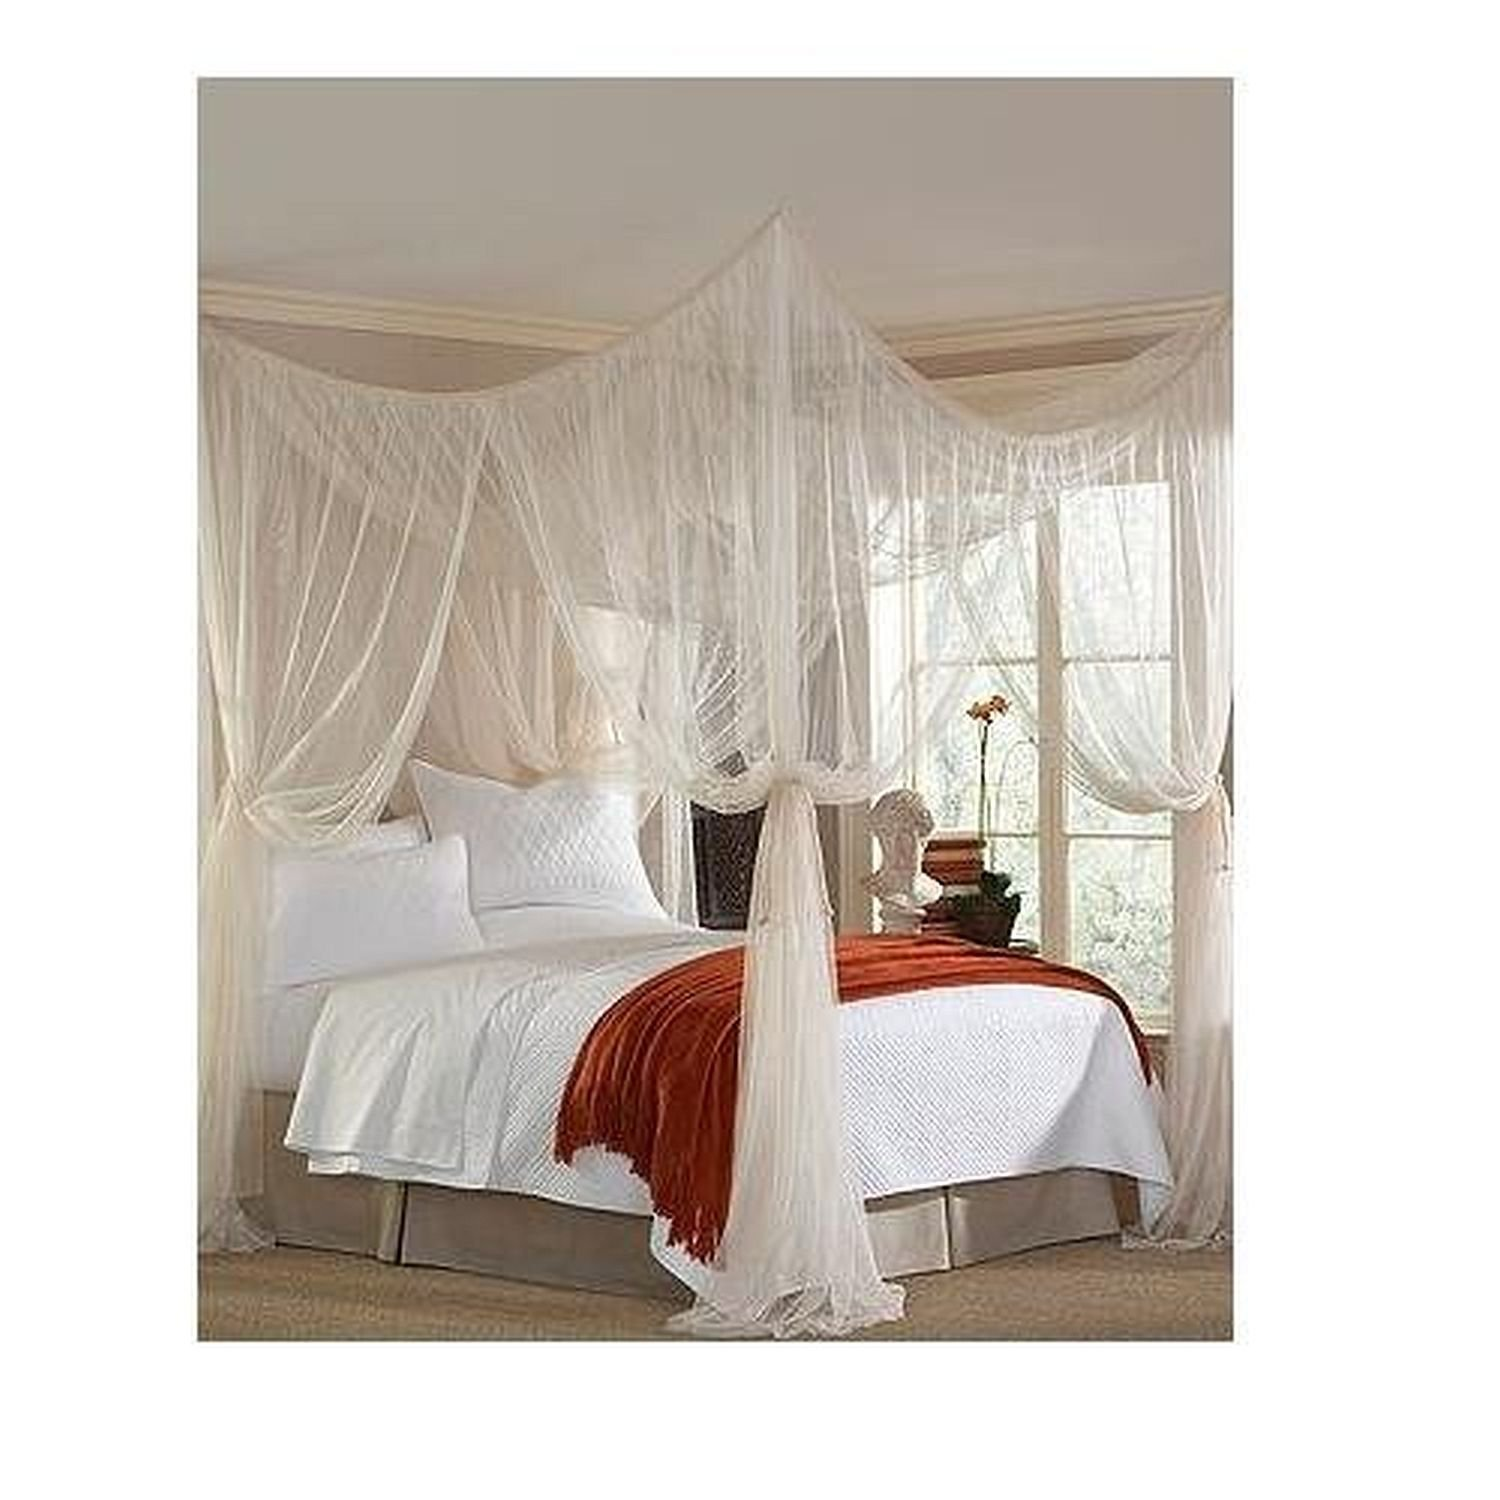 sc 1 st  Amazon.com & Amazon.com: Majesty King Queen Bed Canopy: Home u0026 Kitchen